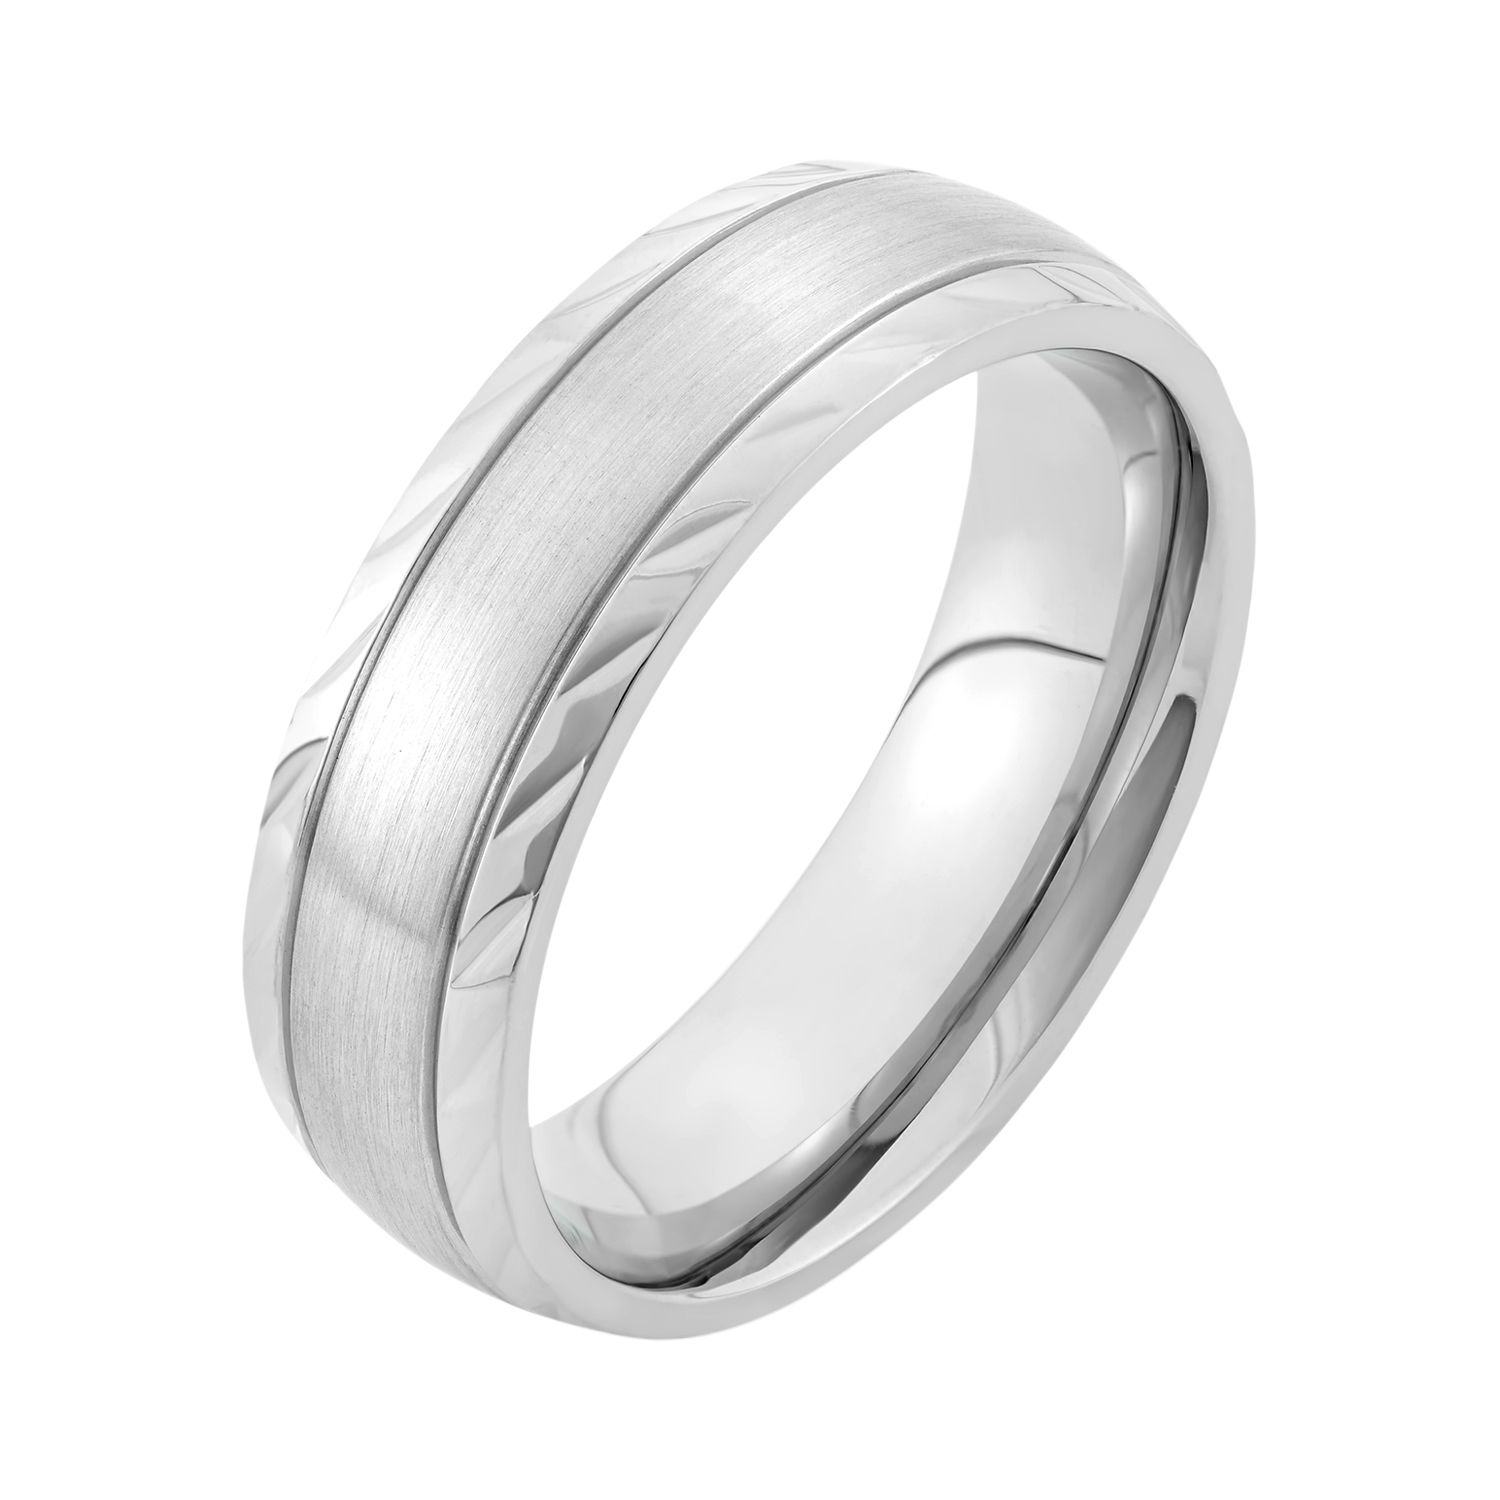 rings wedding elegant triton carbide fort from of s tungsten ring band macy awesome fit men